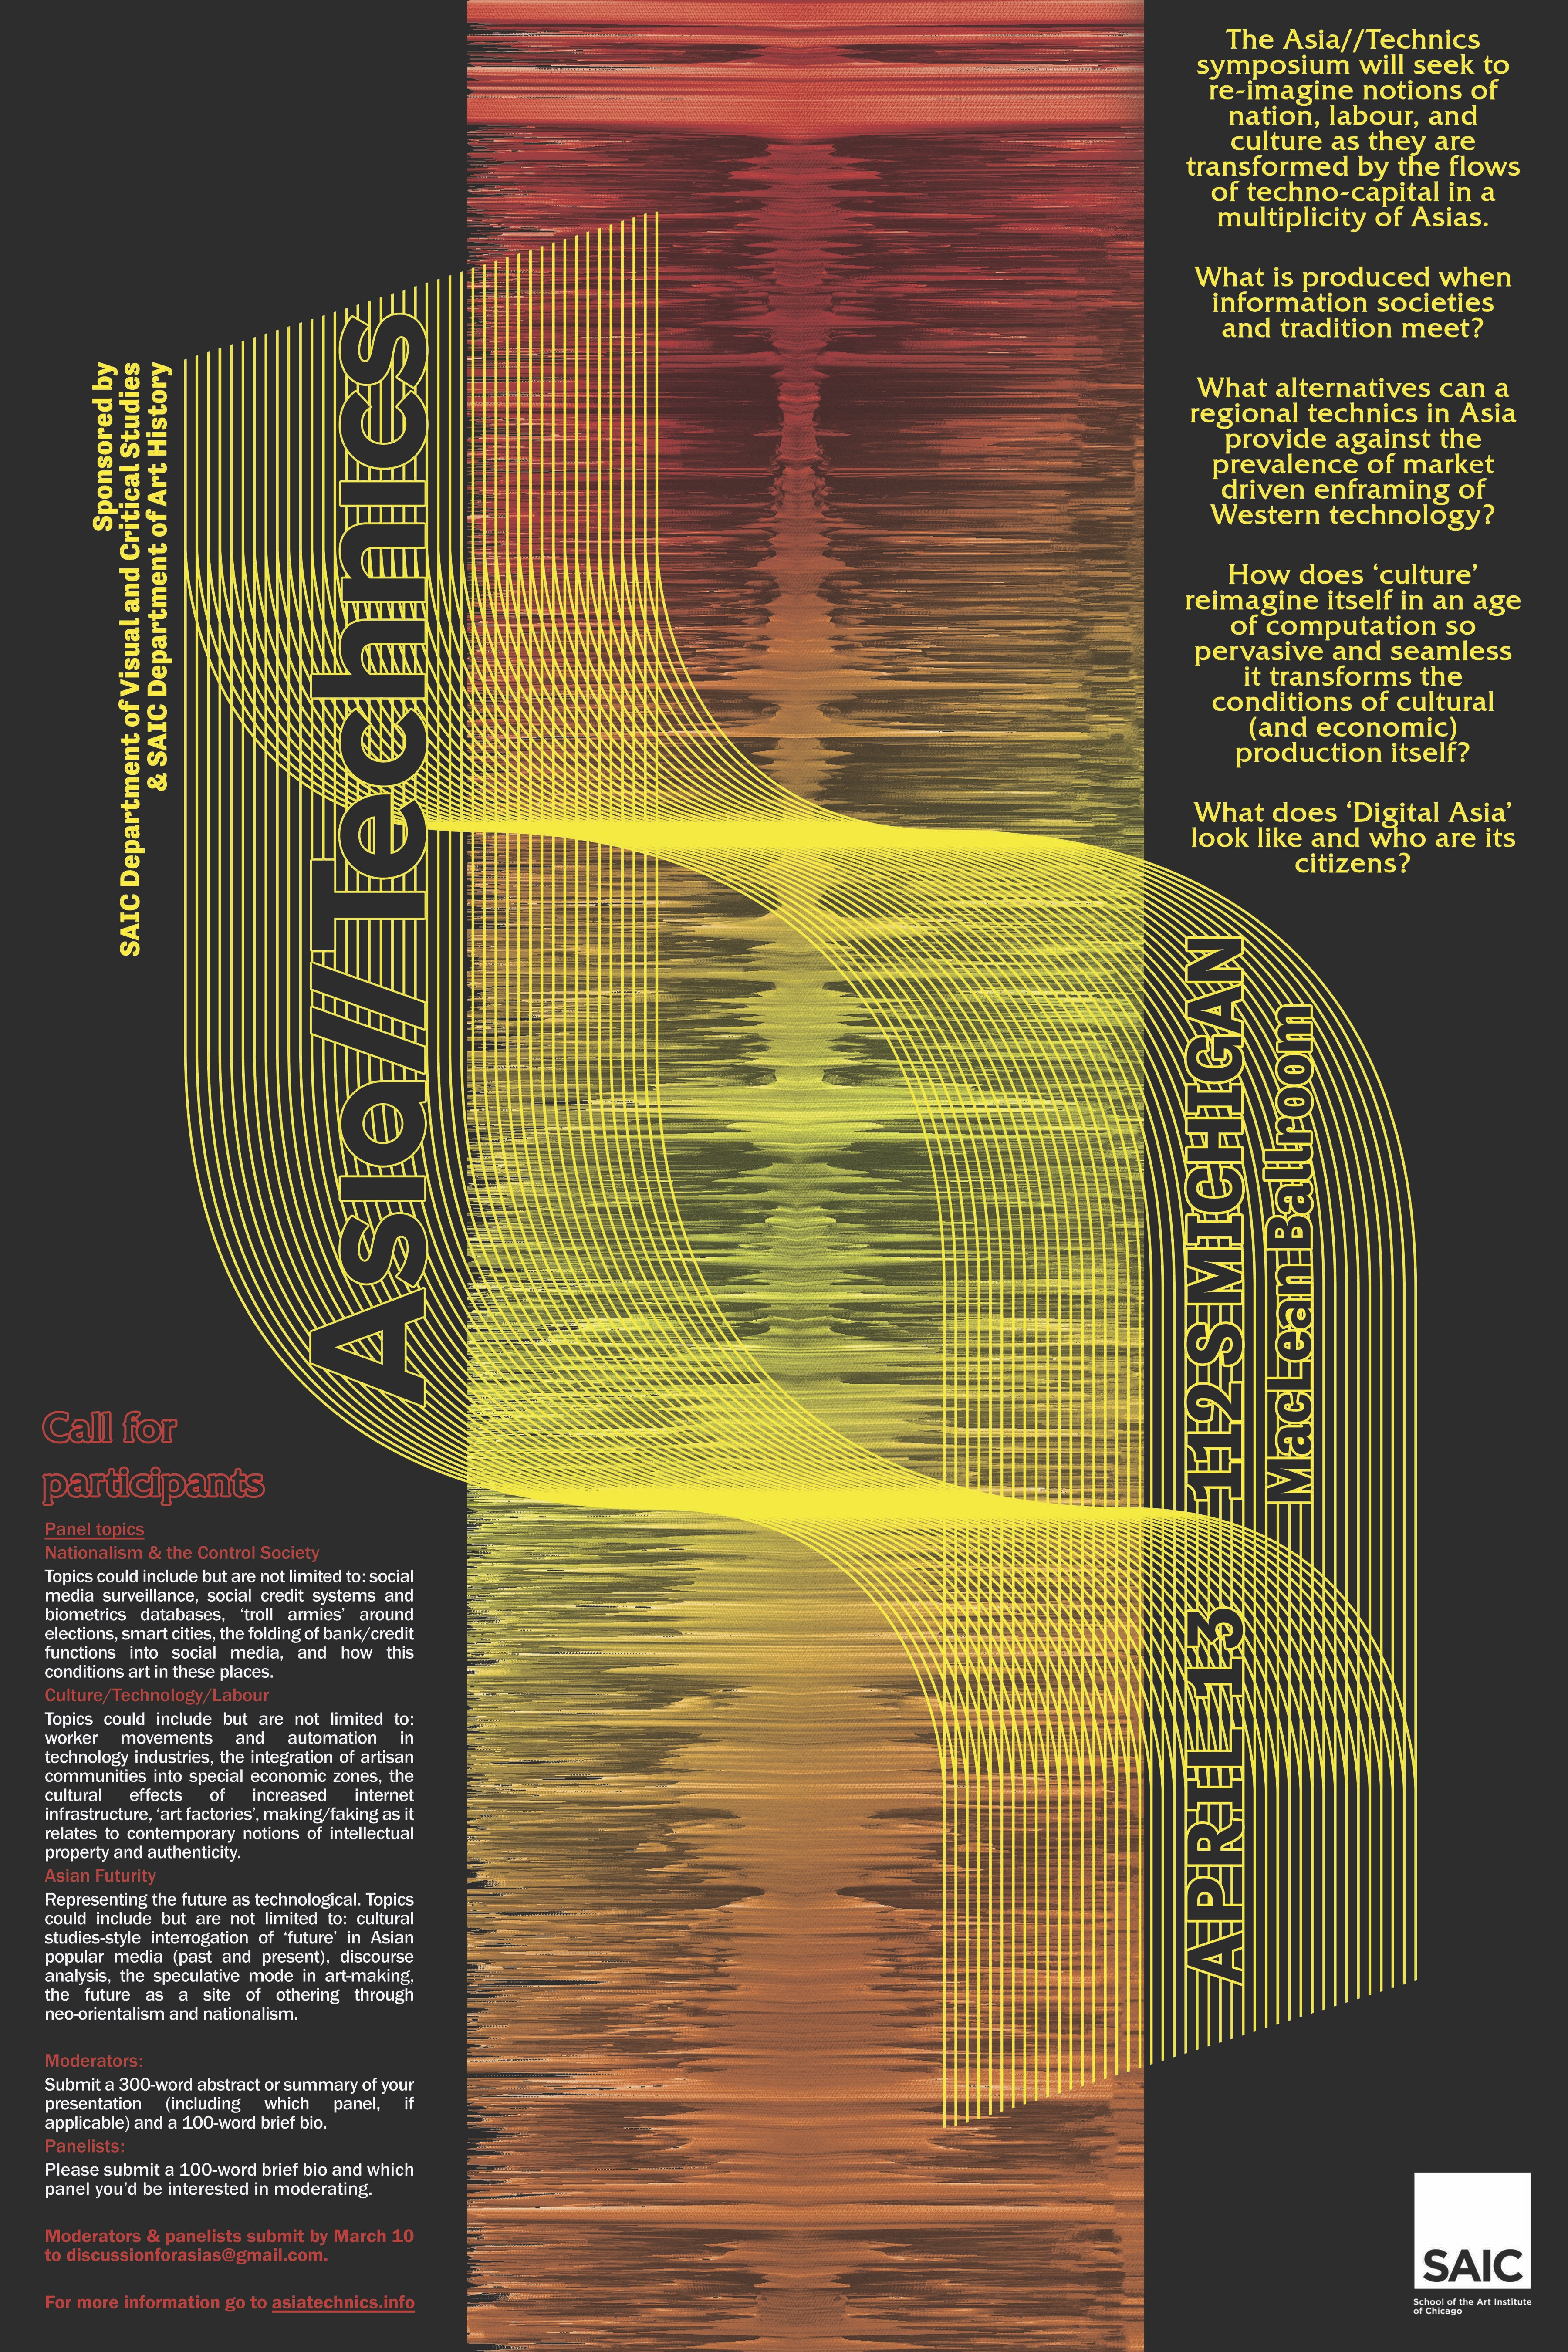 March 10, 2019 The Asia//Technics symposium (asiatechnics.info) sought to re-imagine notions of nation, labour, and culture and answered lots of questions: the flows of techno-capital in a multiplicity of Asias. What is produced when information societies and tradition meet? What alternatives can a regional technics in Asia provide against the the prevalence of market-driven enframing of Western technology? How does 'culture' reimagine itself in an age of computation so pervasive and seamless it transforms the conditions of cultural (and economic) production itself? What does 'Digital Asia' look like and who are its citizens? We cast Asian futurity into relief against AI-assisted technologies that entertain and monitor, special economic zones that bring prosperity and displacement, and other sites responsible for creating Asia's polymorphous technical cultures.